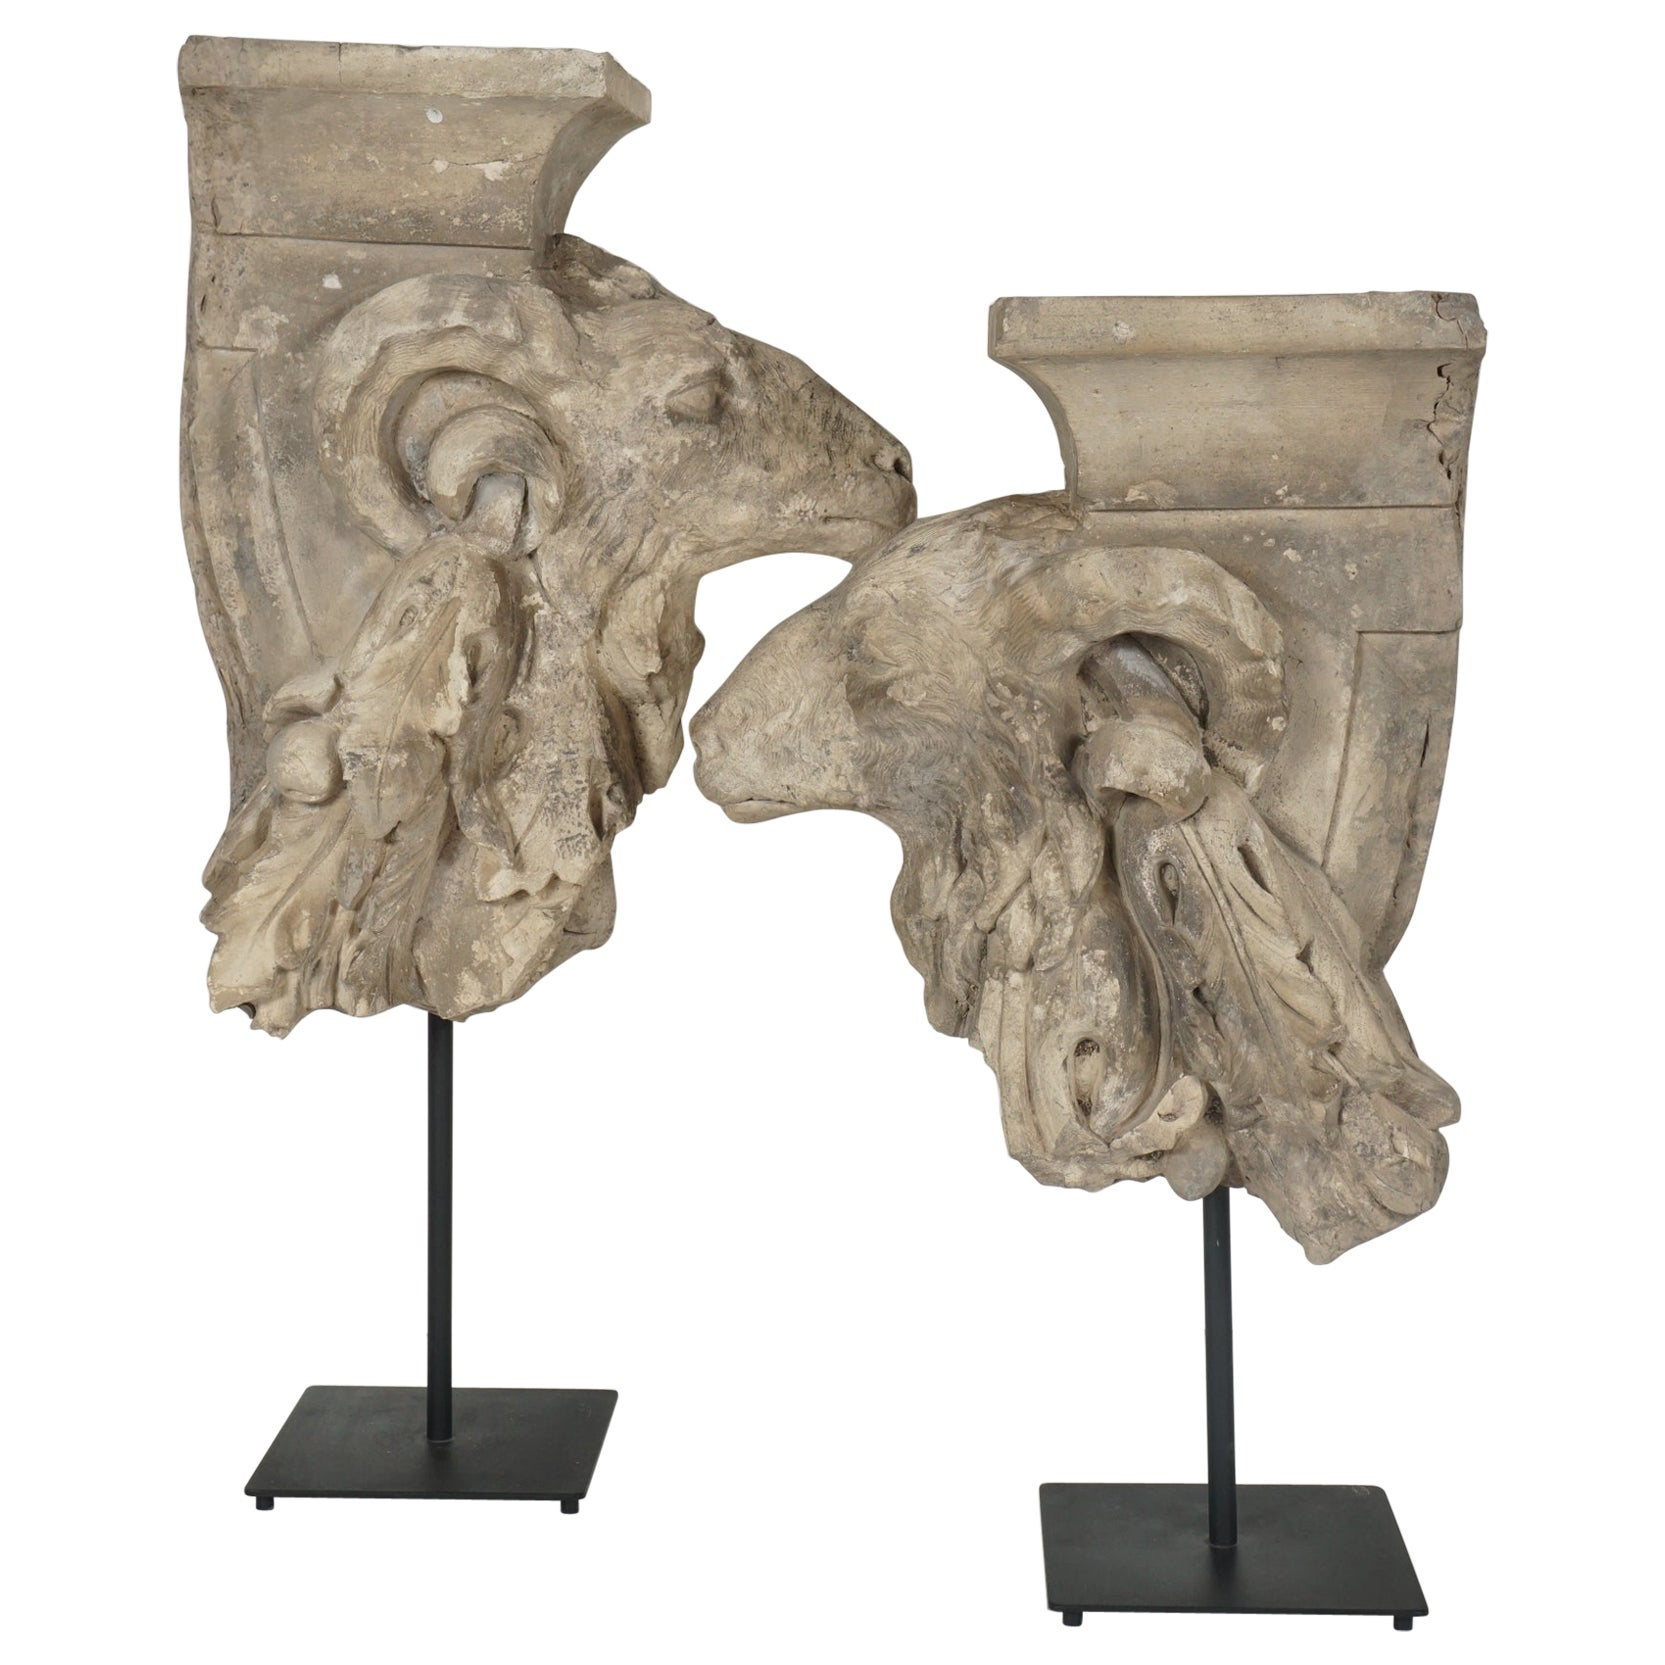 Pair of Addorsed 18th Century French Terracotta Architectural Fragments